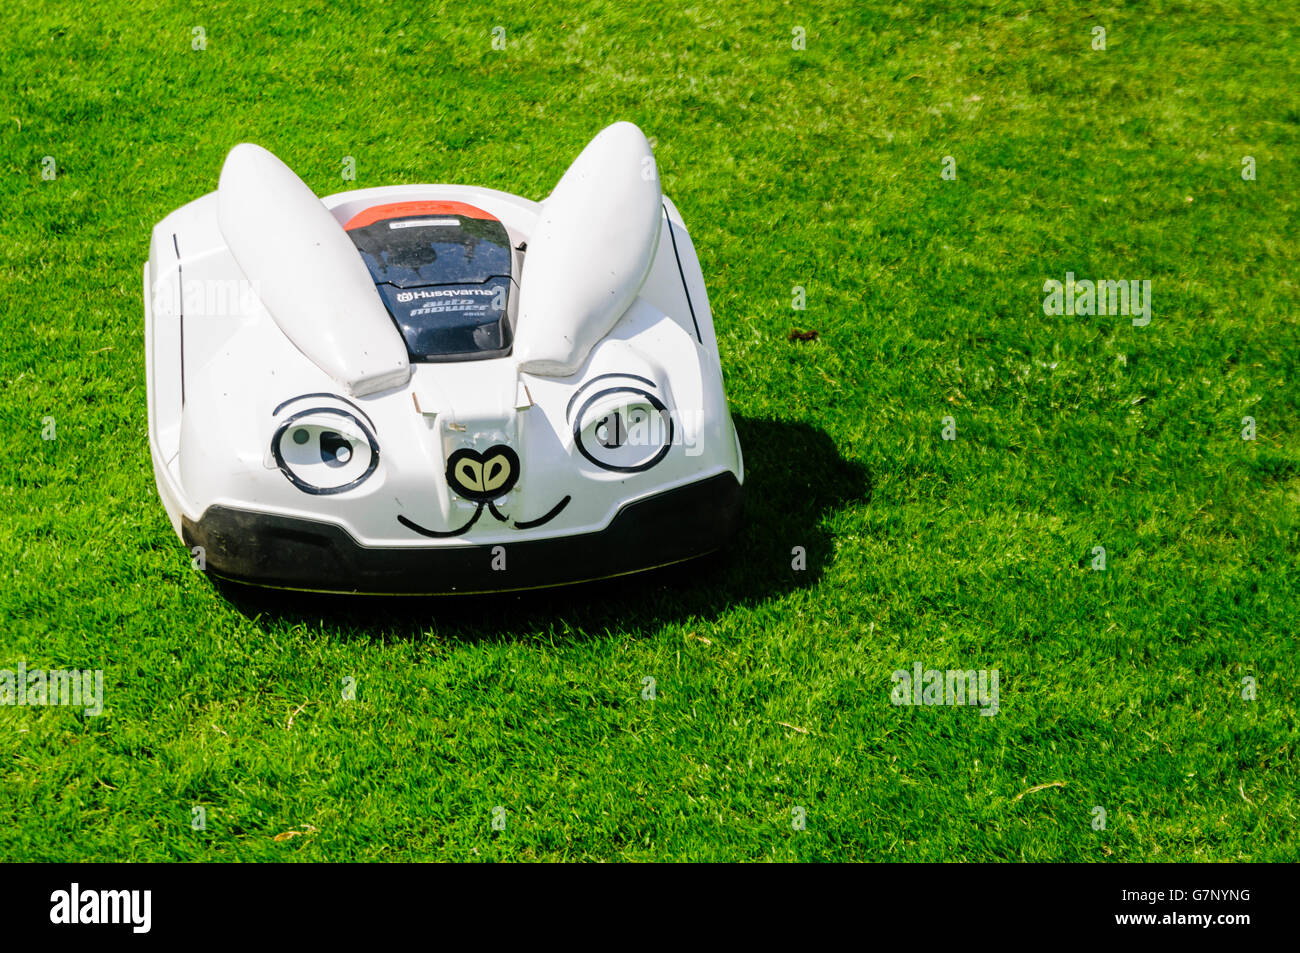 A husqvarna robotic grass and lawn mower disguised as a for Husqvarna robot